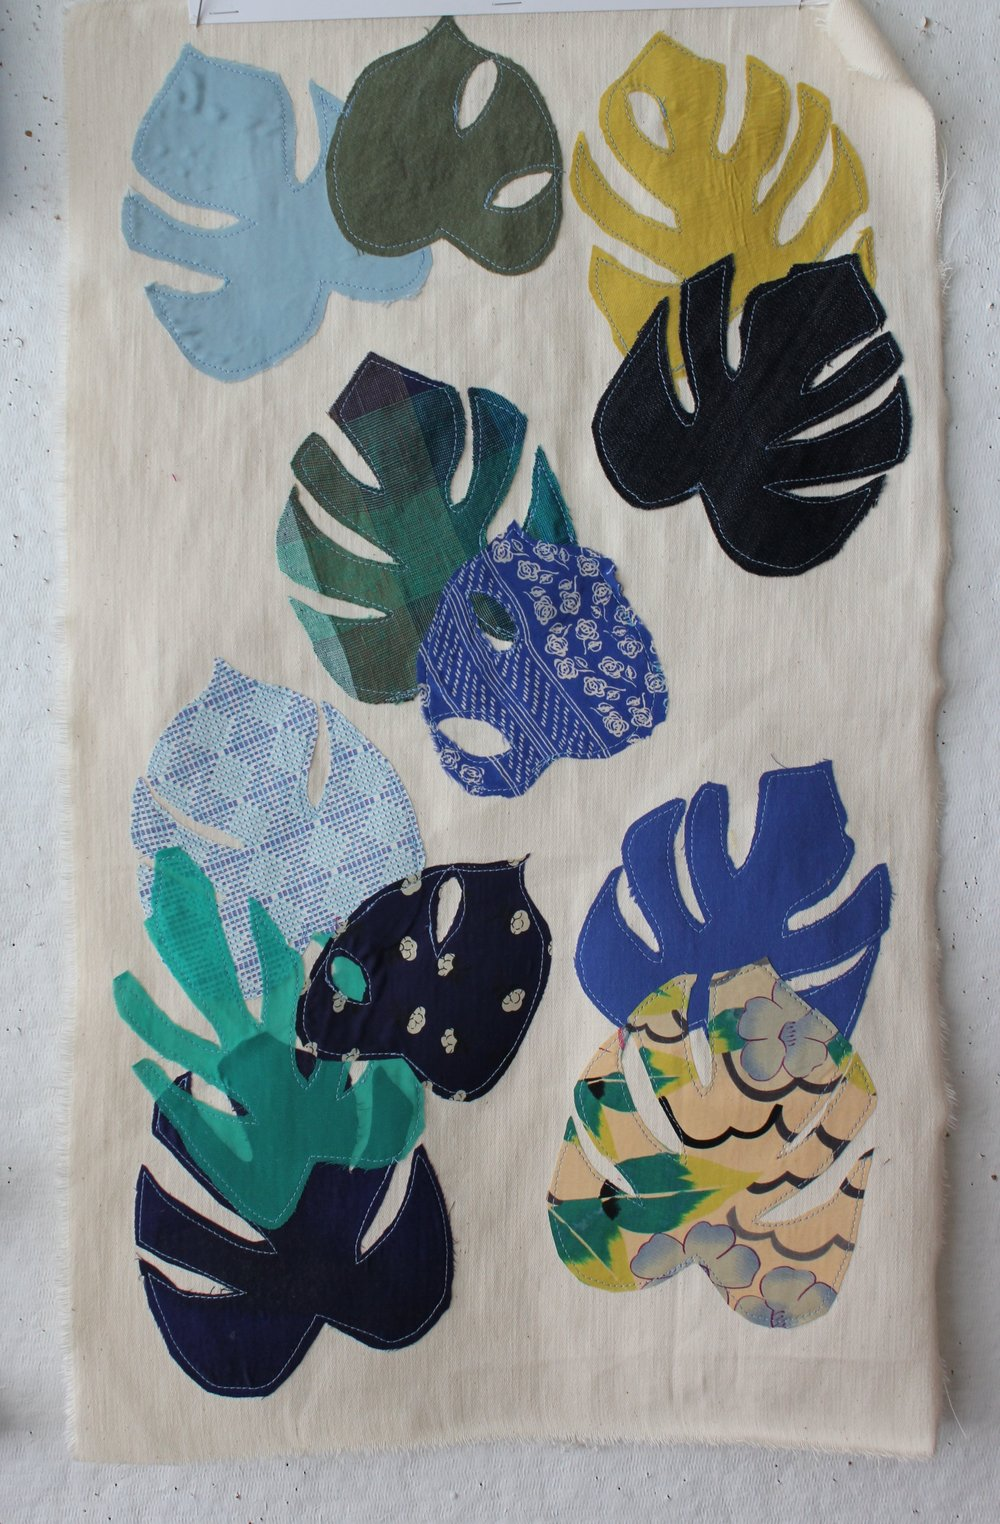 Appliqué fabric collage